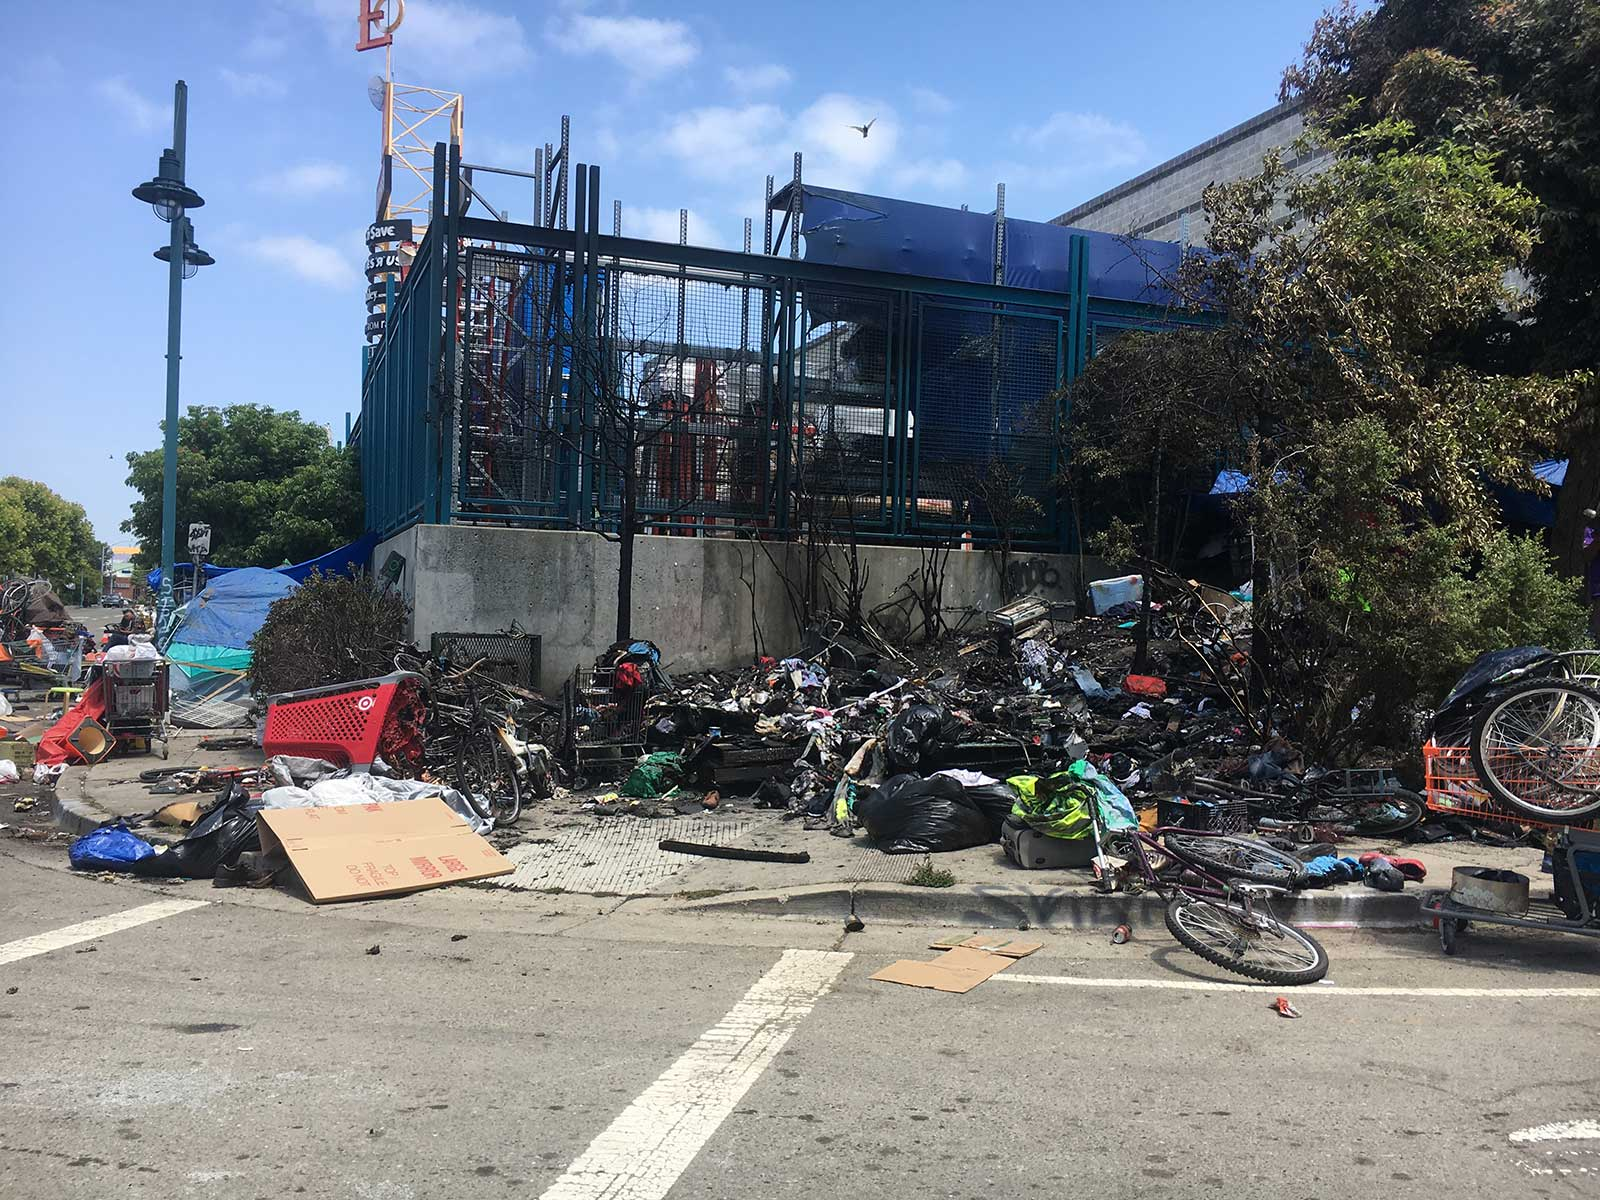 Explosion' at Home Depot Homeless Encampment rattles ... on barn with ramp, trailer with ramp, brick home with ramp,